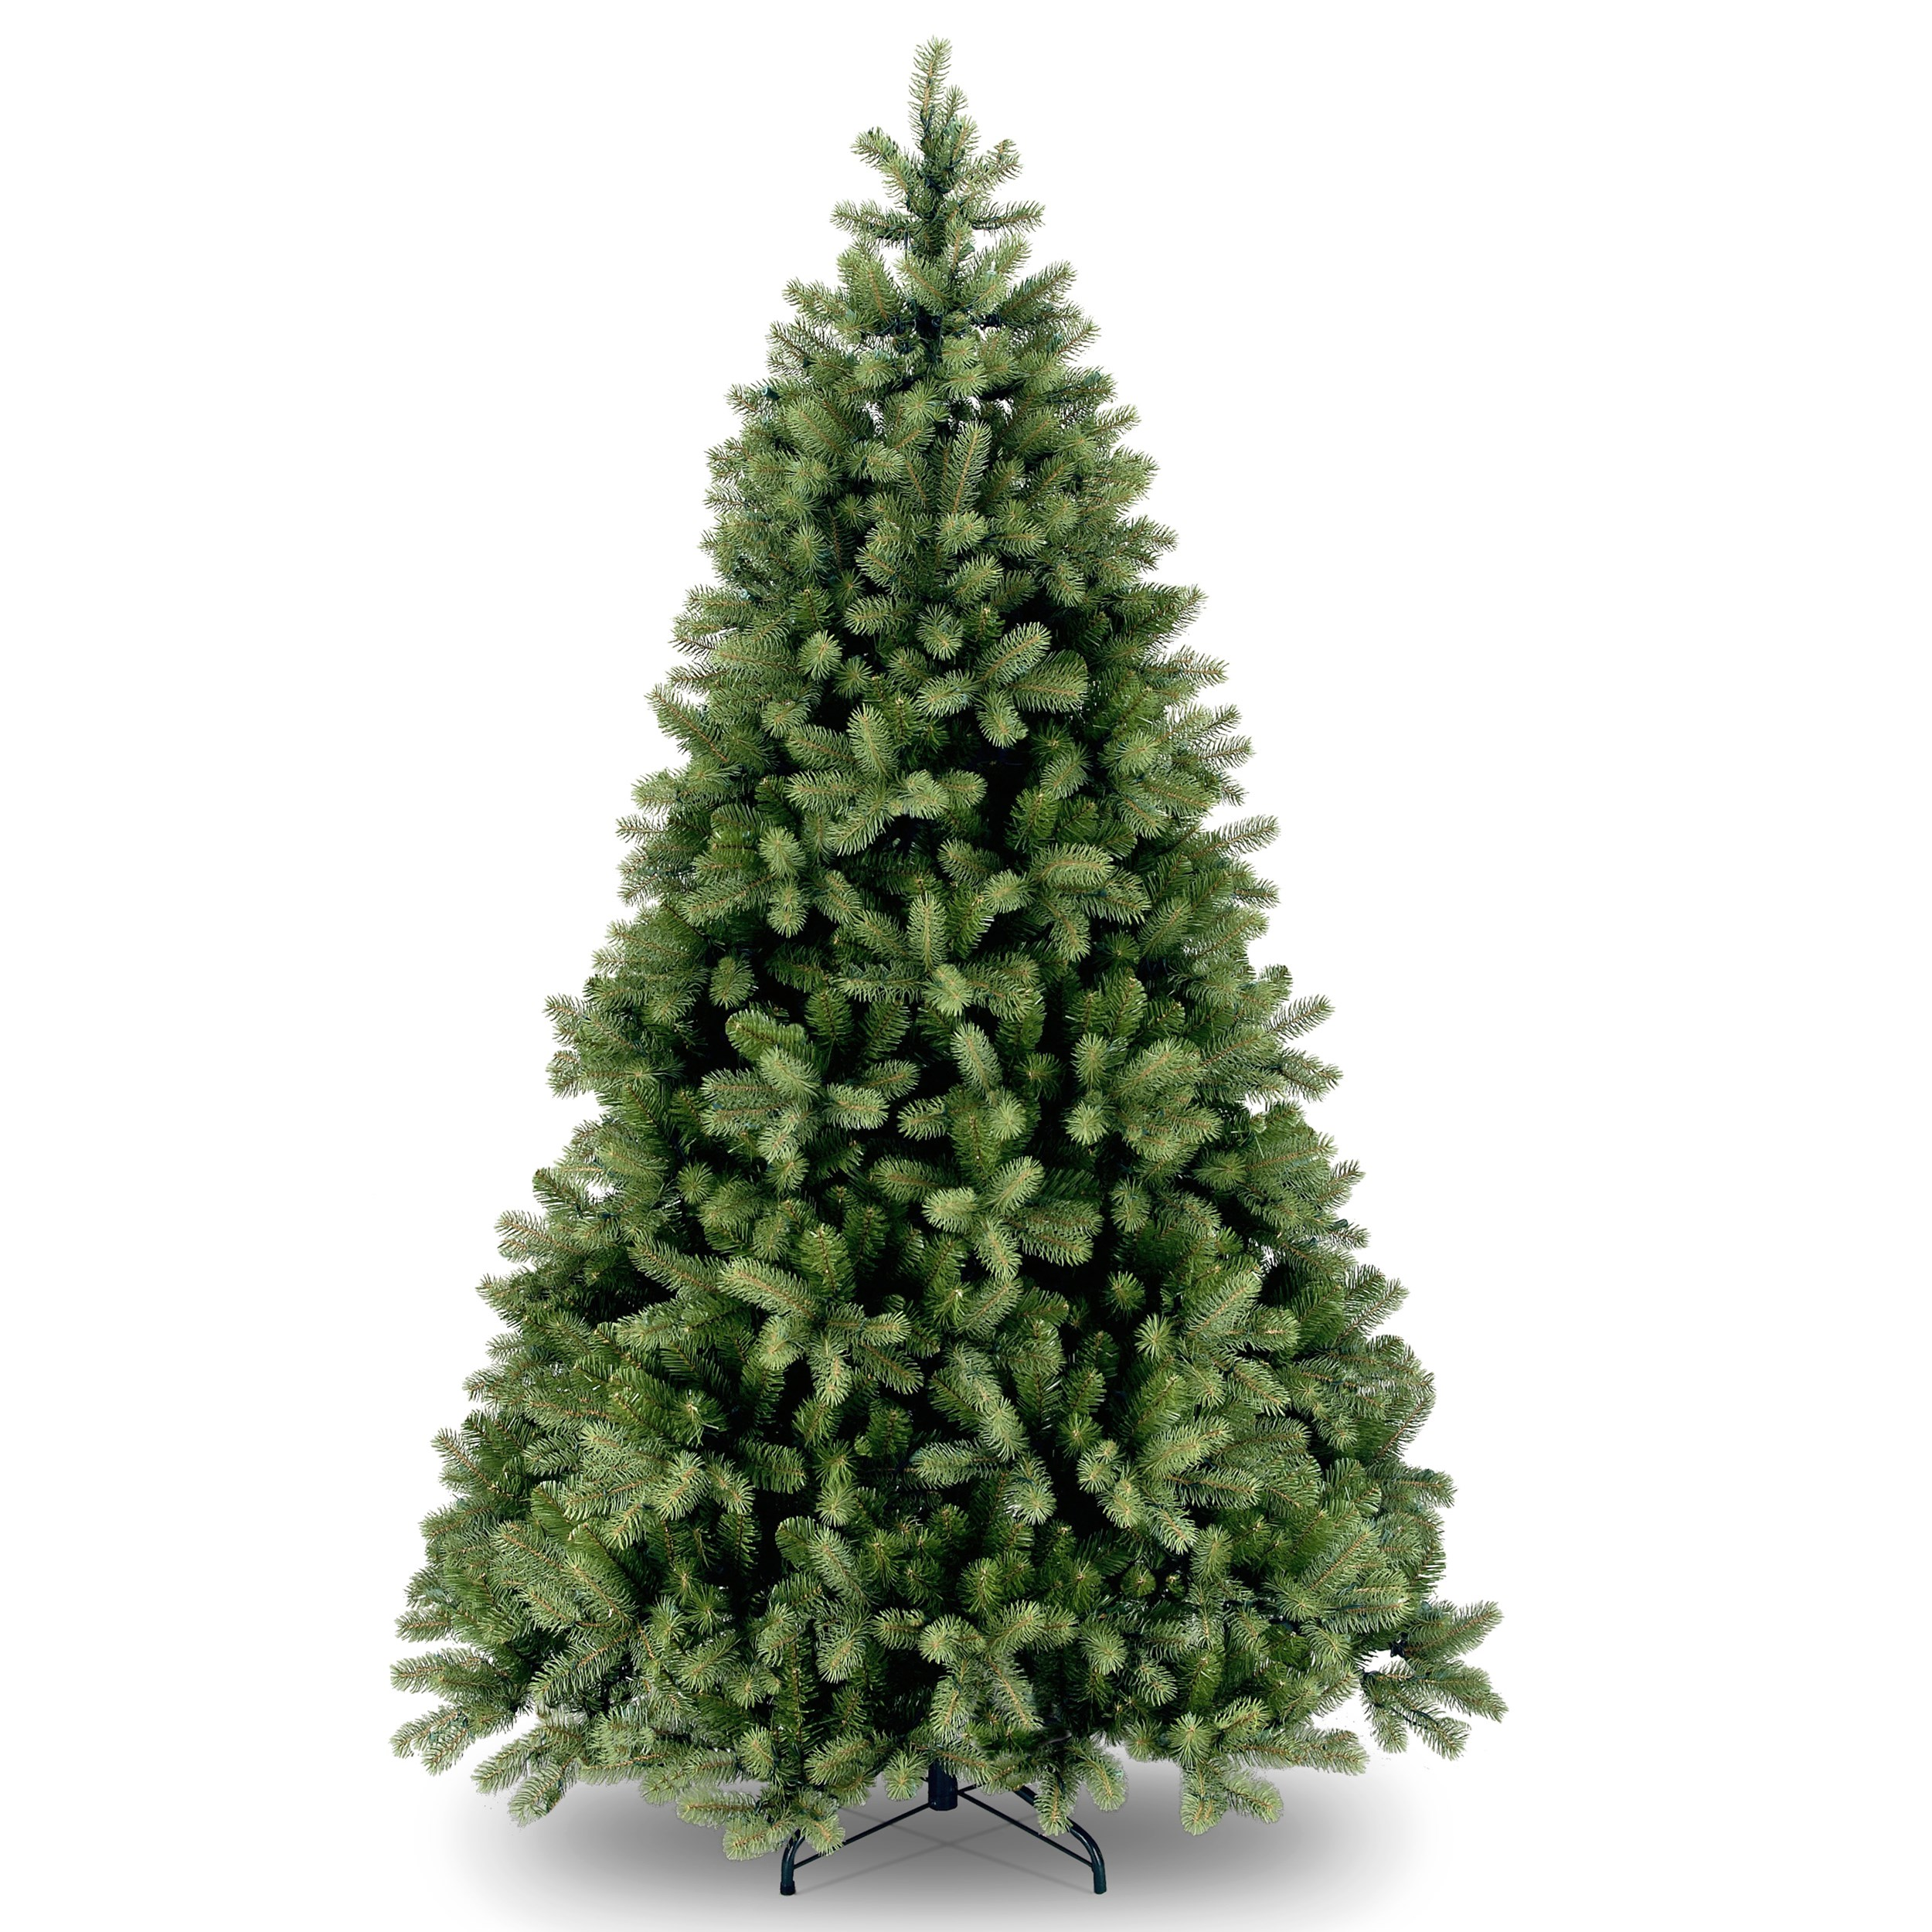 Artificial Christmas Tree Realistic